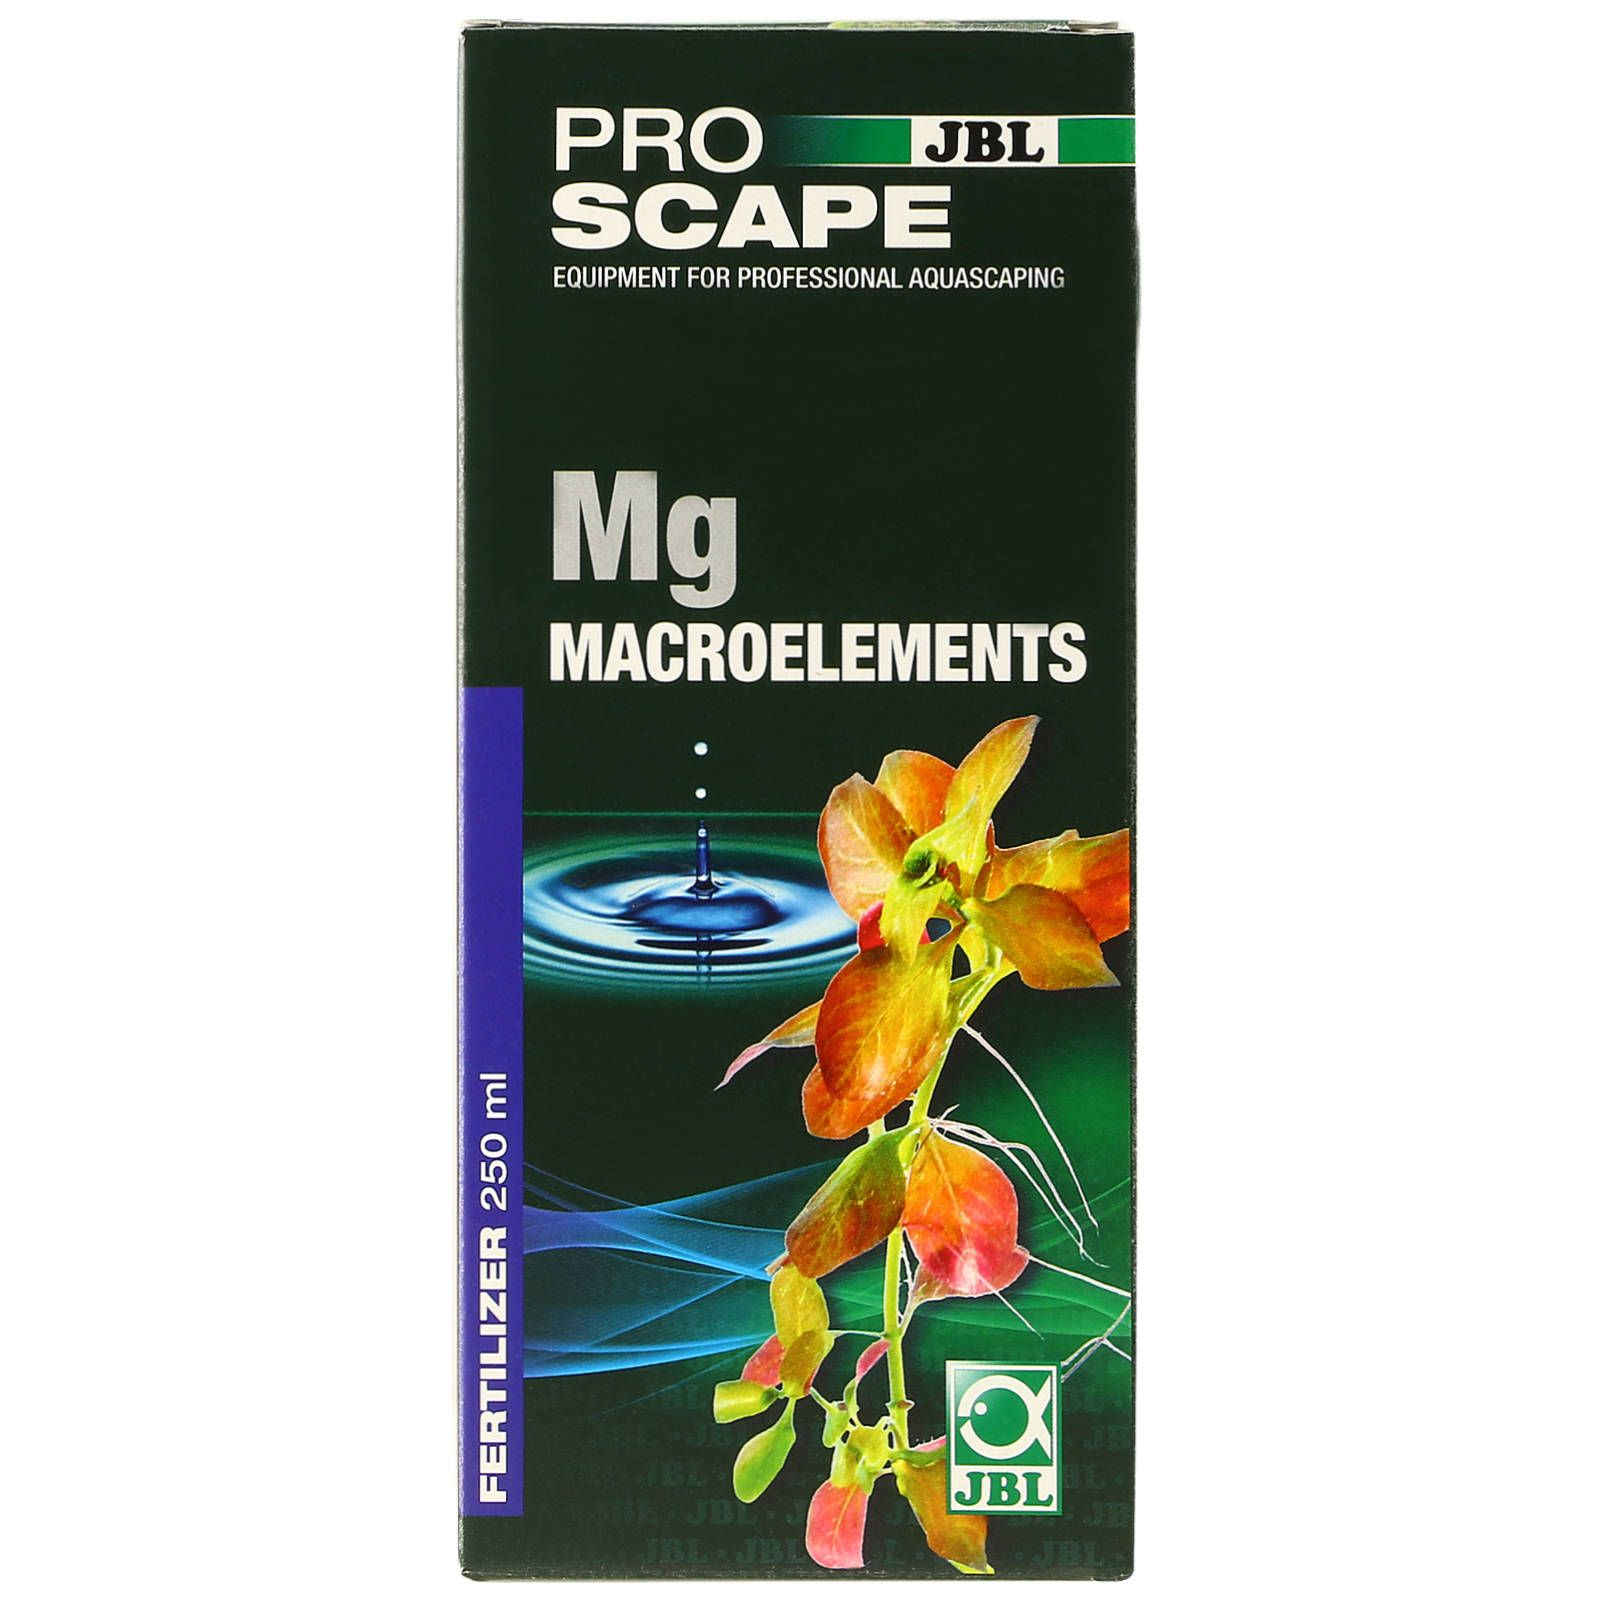 JBL - ProScape - Mg Macroelements - 250 ml